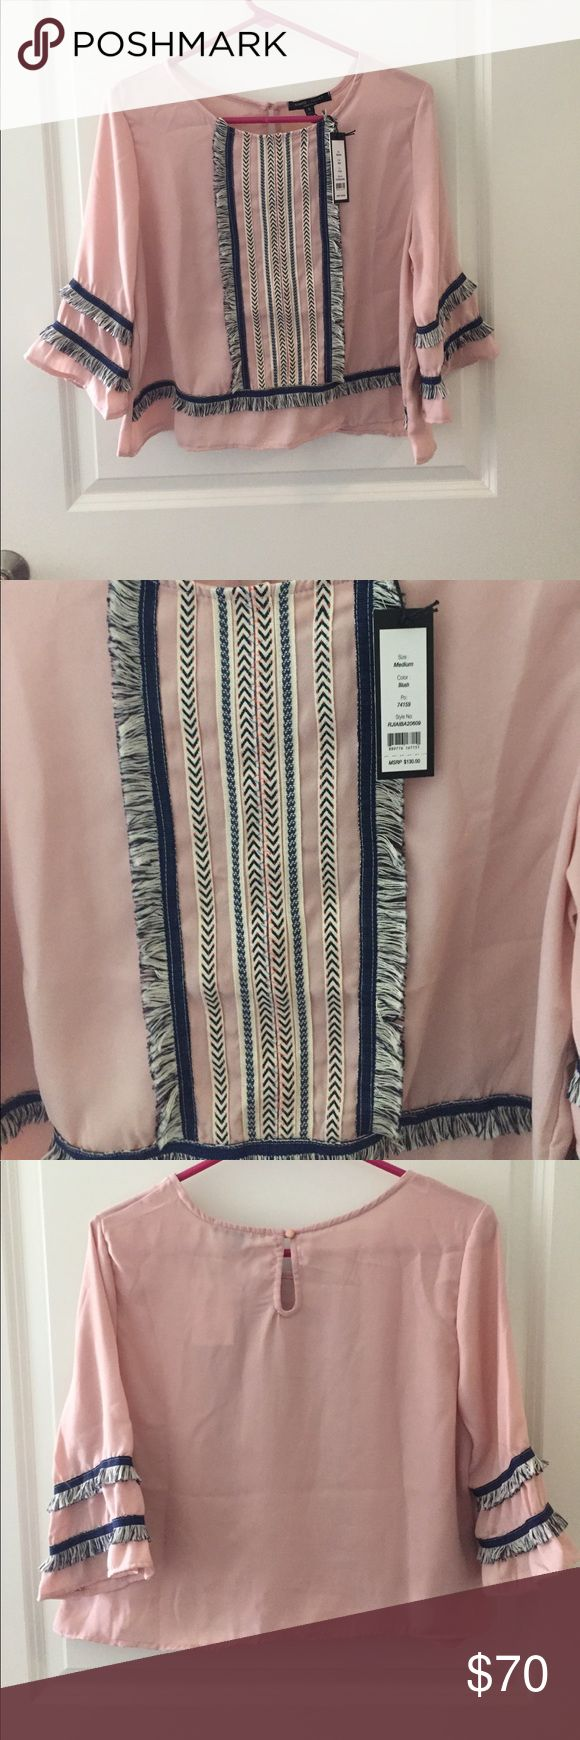 """NWT Romeo and Juliet Couture fringe blouse, M NWT Romeo and Juliet couture 3/4 length sleeve blouse in """"blush"""" with navy and cream stitching and fringe. Size medium. Slight crop-top fit. Perfect with skinny jeans for the fall! Romeo & Juliet Couture Tops Blouses"""